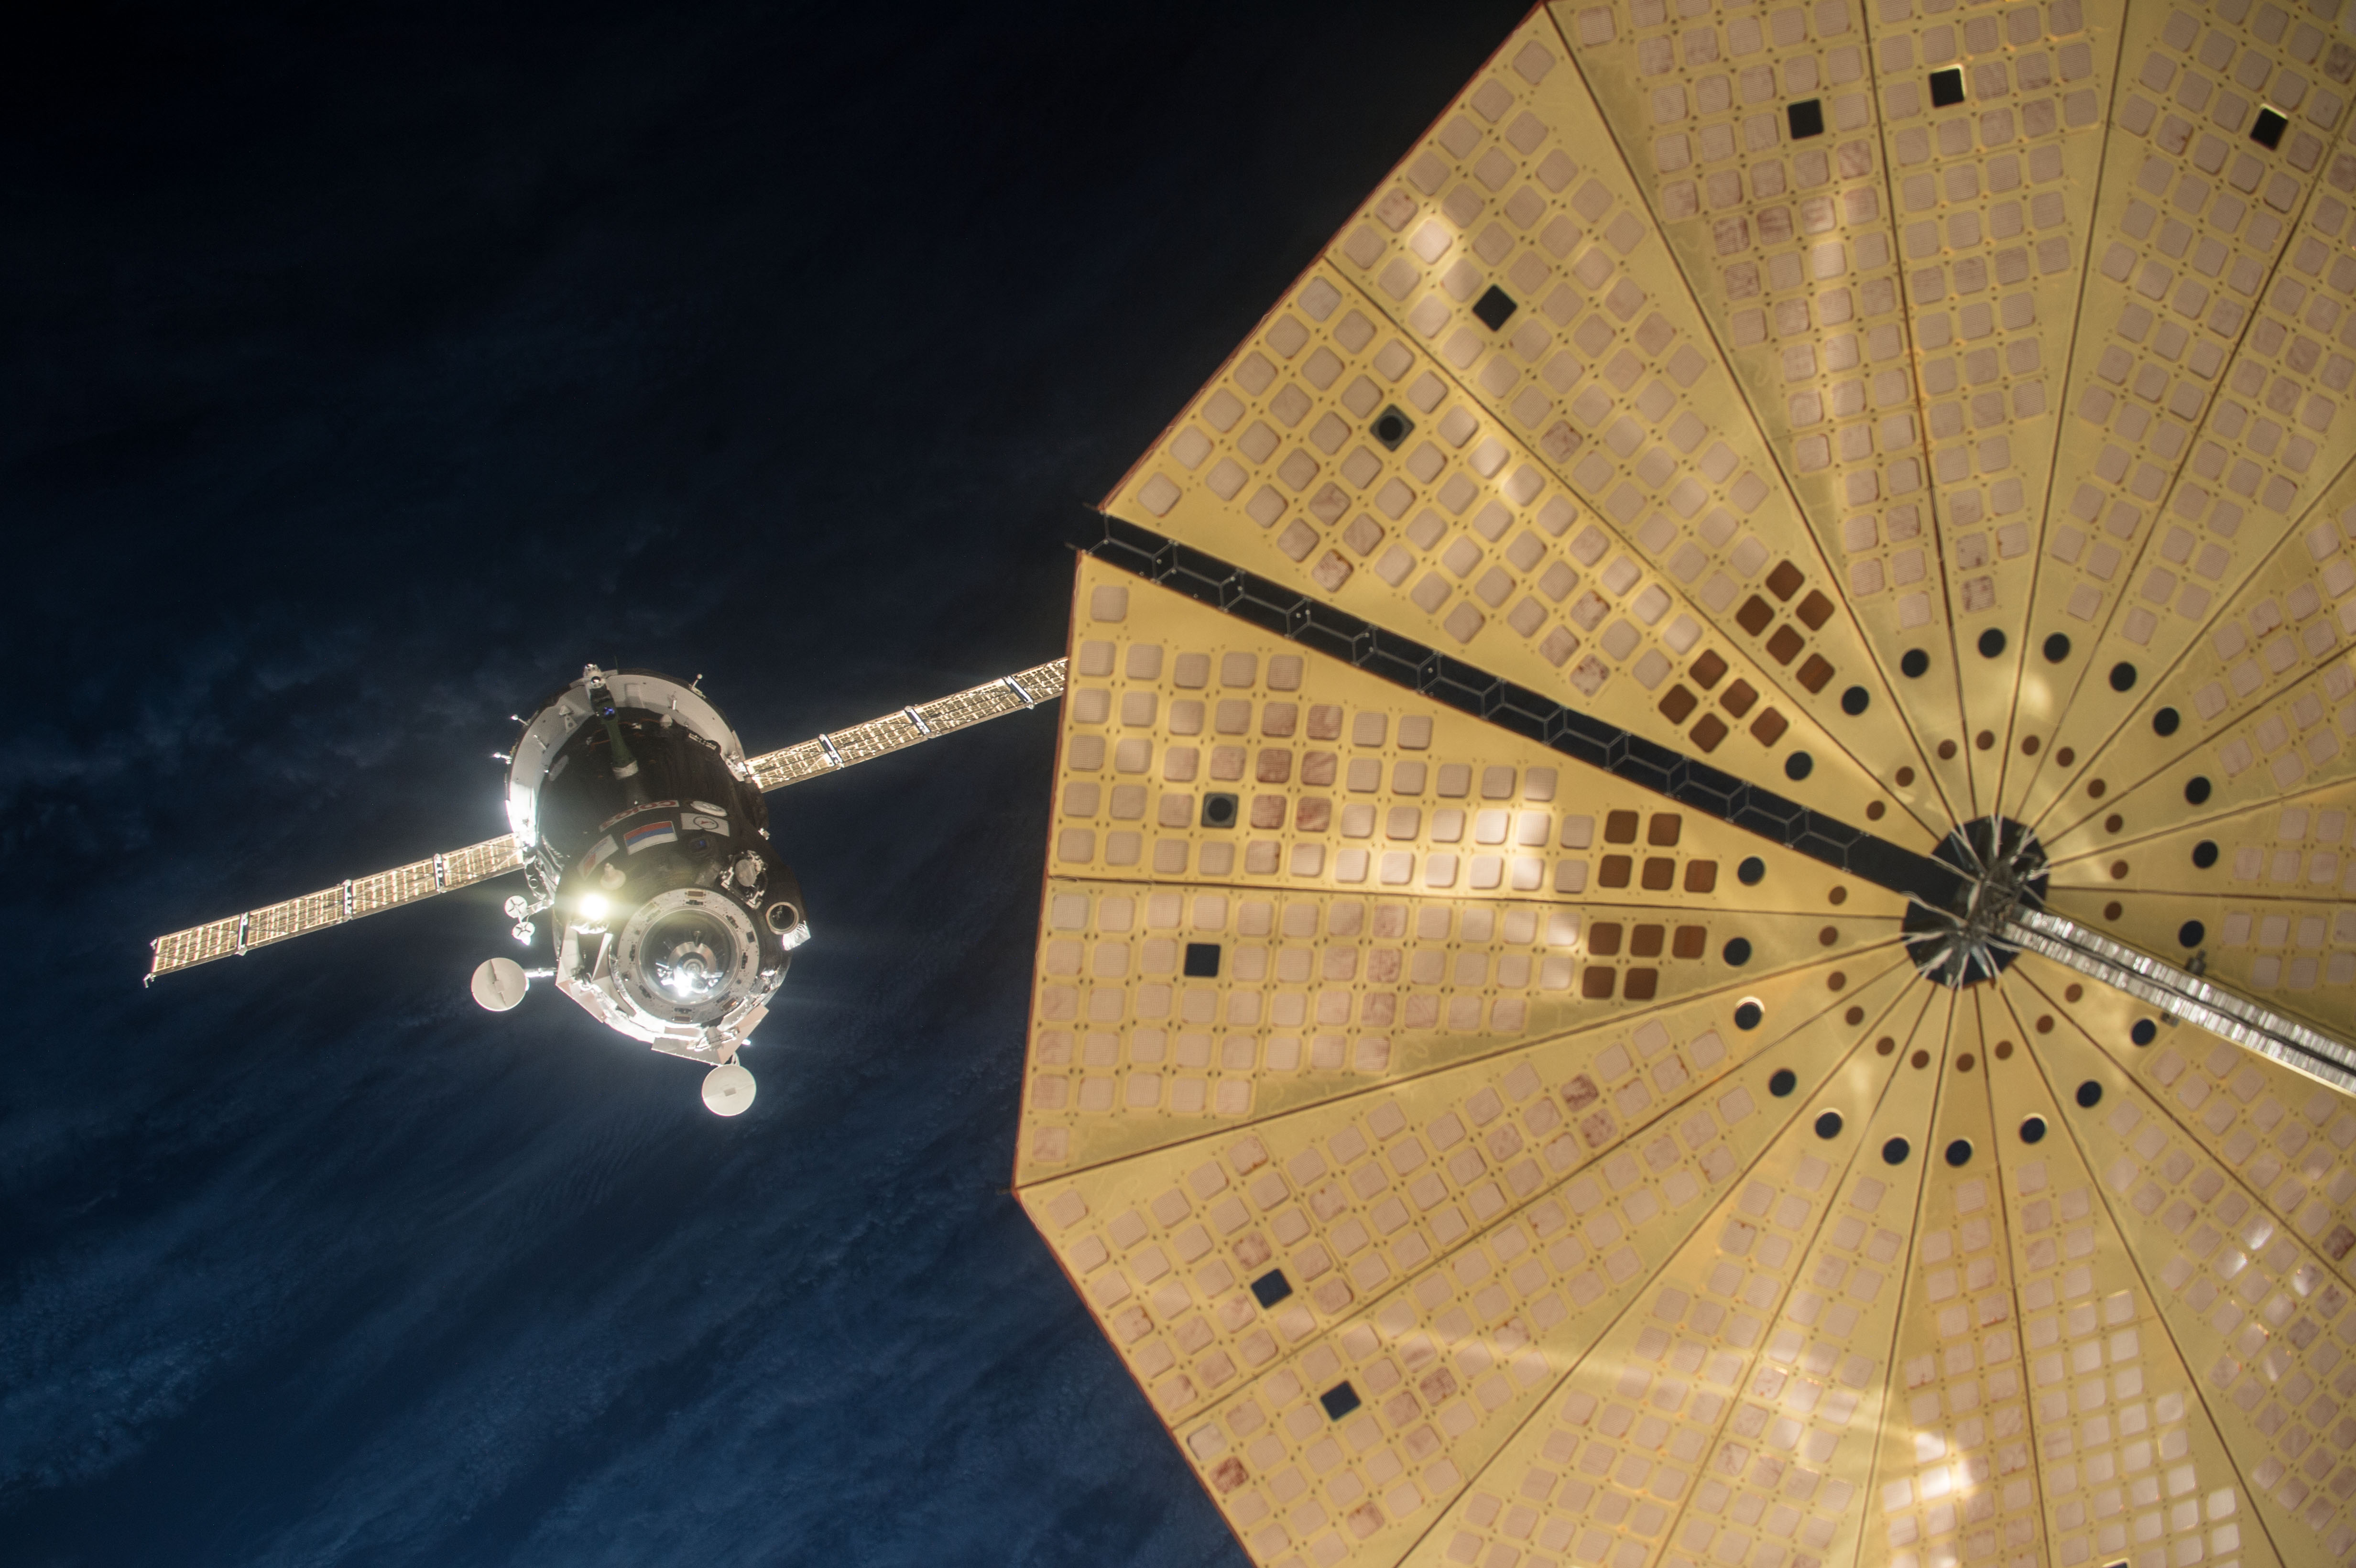 Soyuz TMA-19M spacecraft manually docks with the International Space Station (ISS) December 15, 2015 in space.